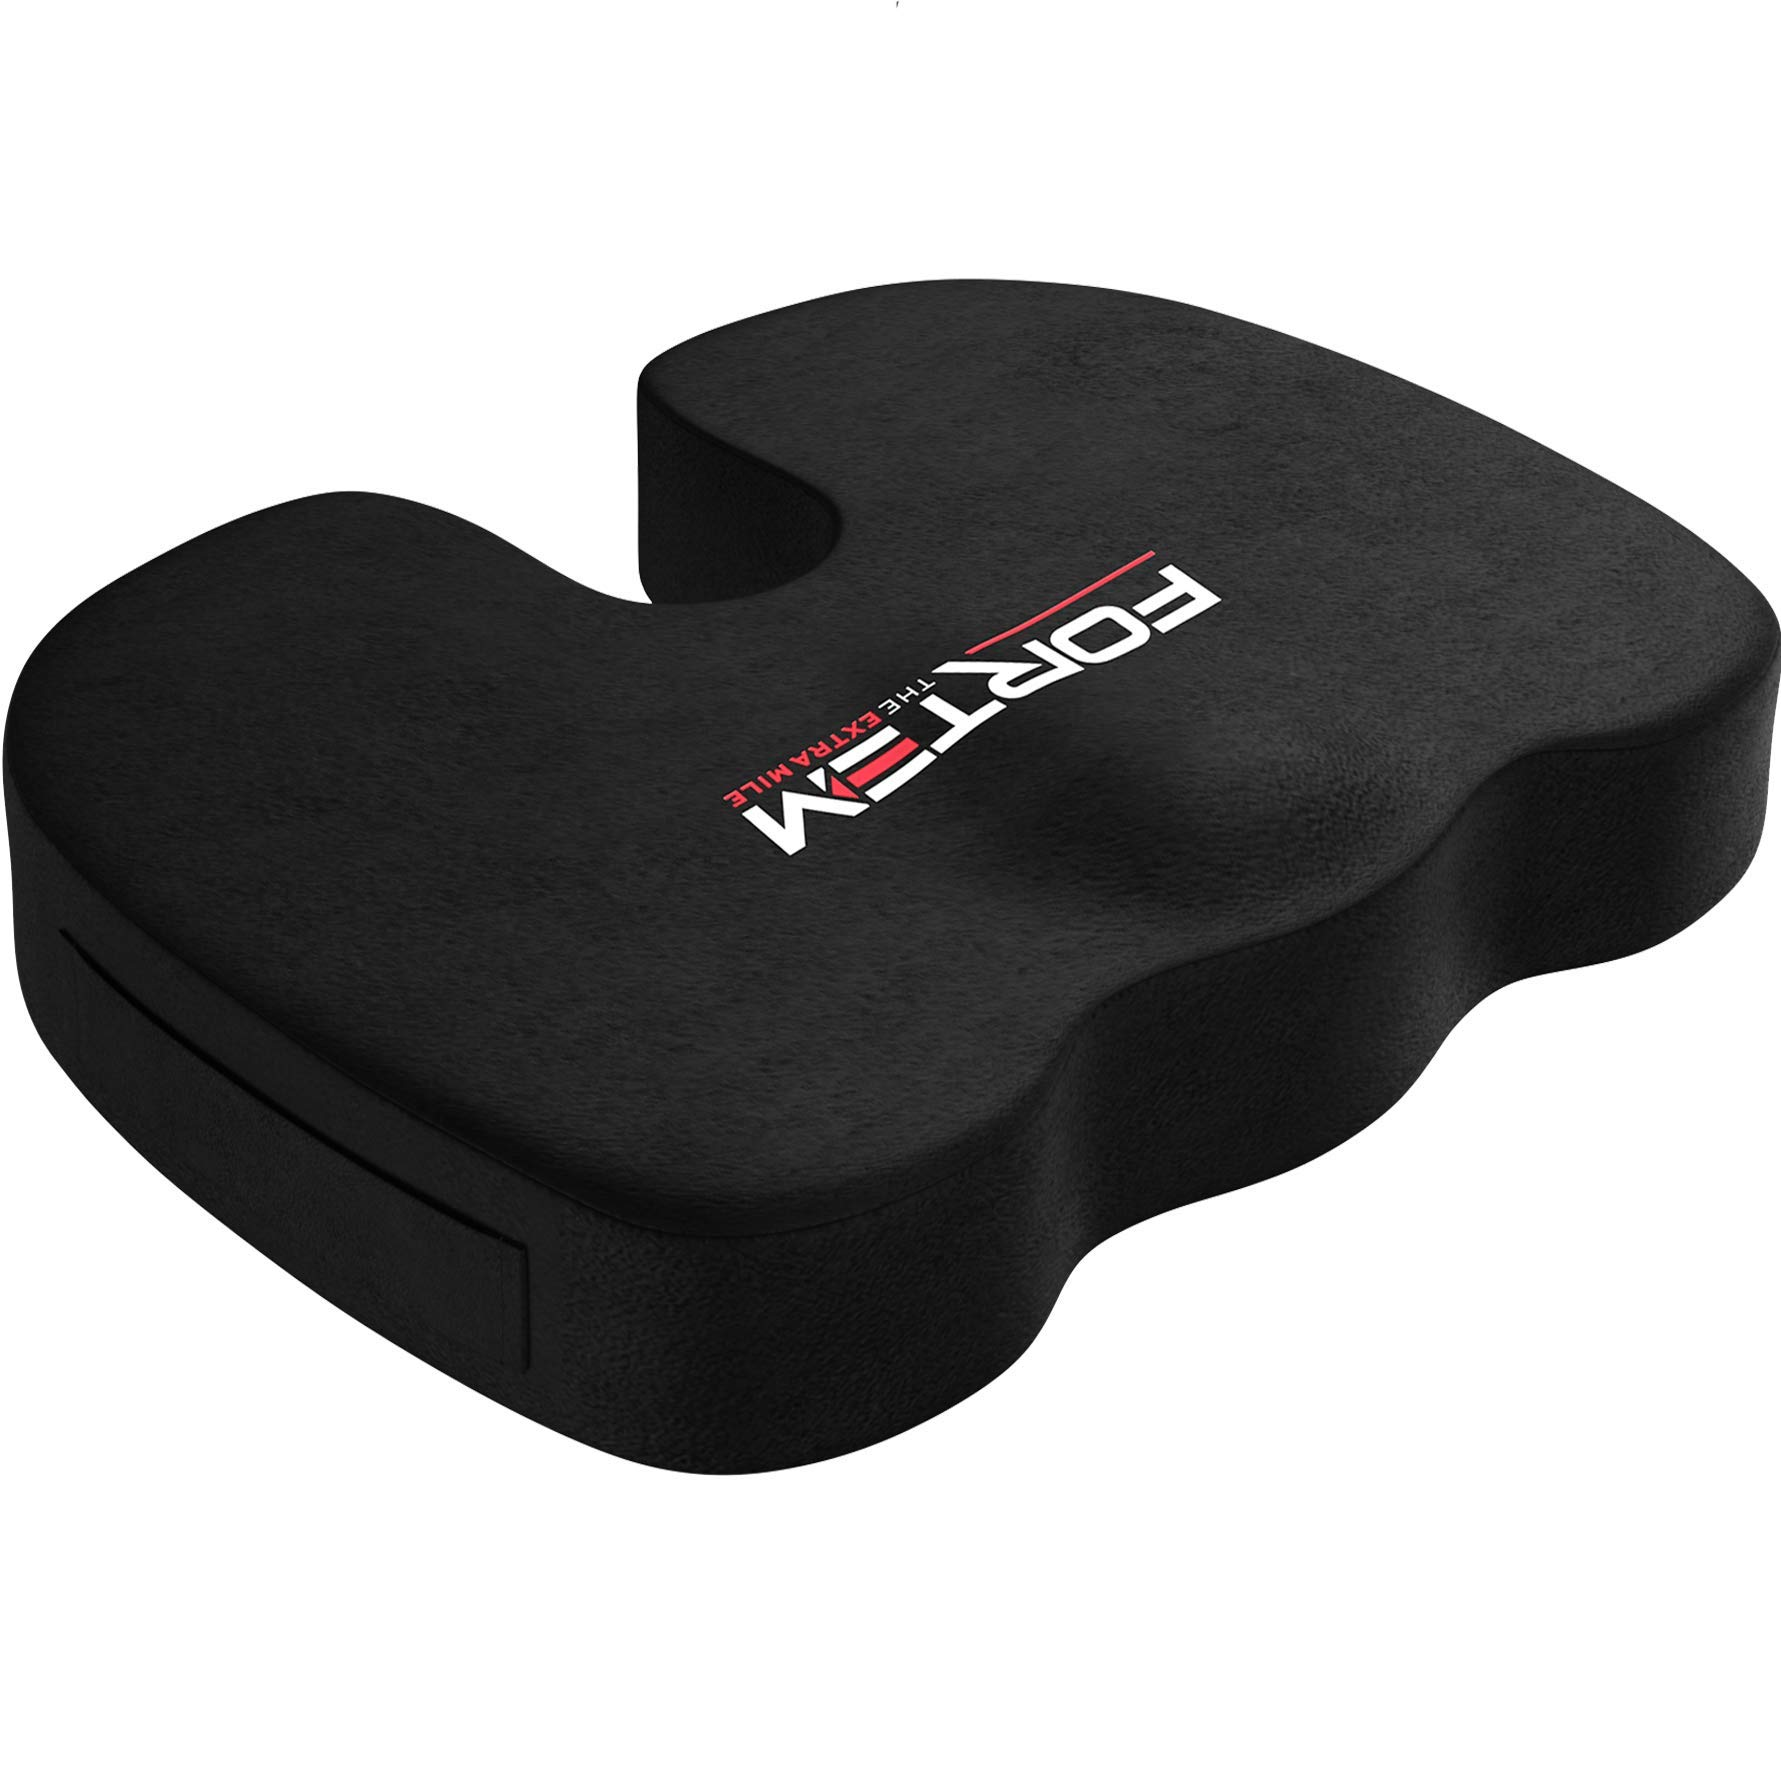 FORTEM Seat Cushion Pillow for Office Chair, Wheelchair, Car, Coccyx & Sciatica Pain Relief, Non-Slip Bottom, Washable Cover by FORTEM